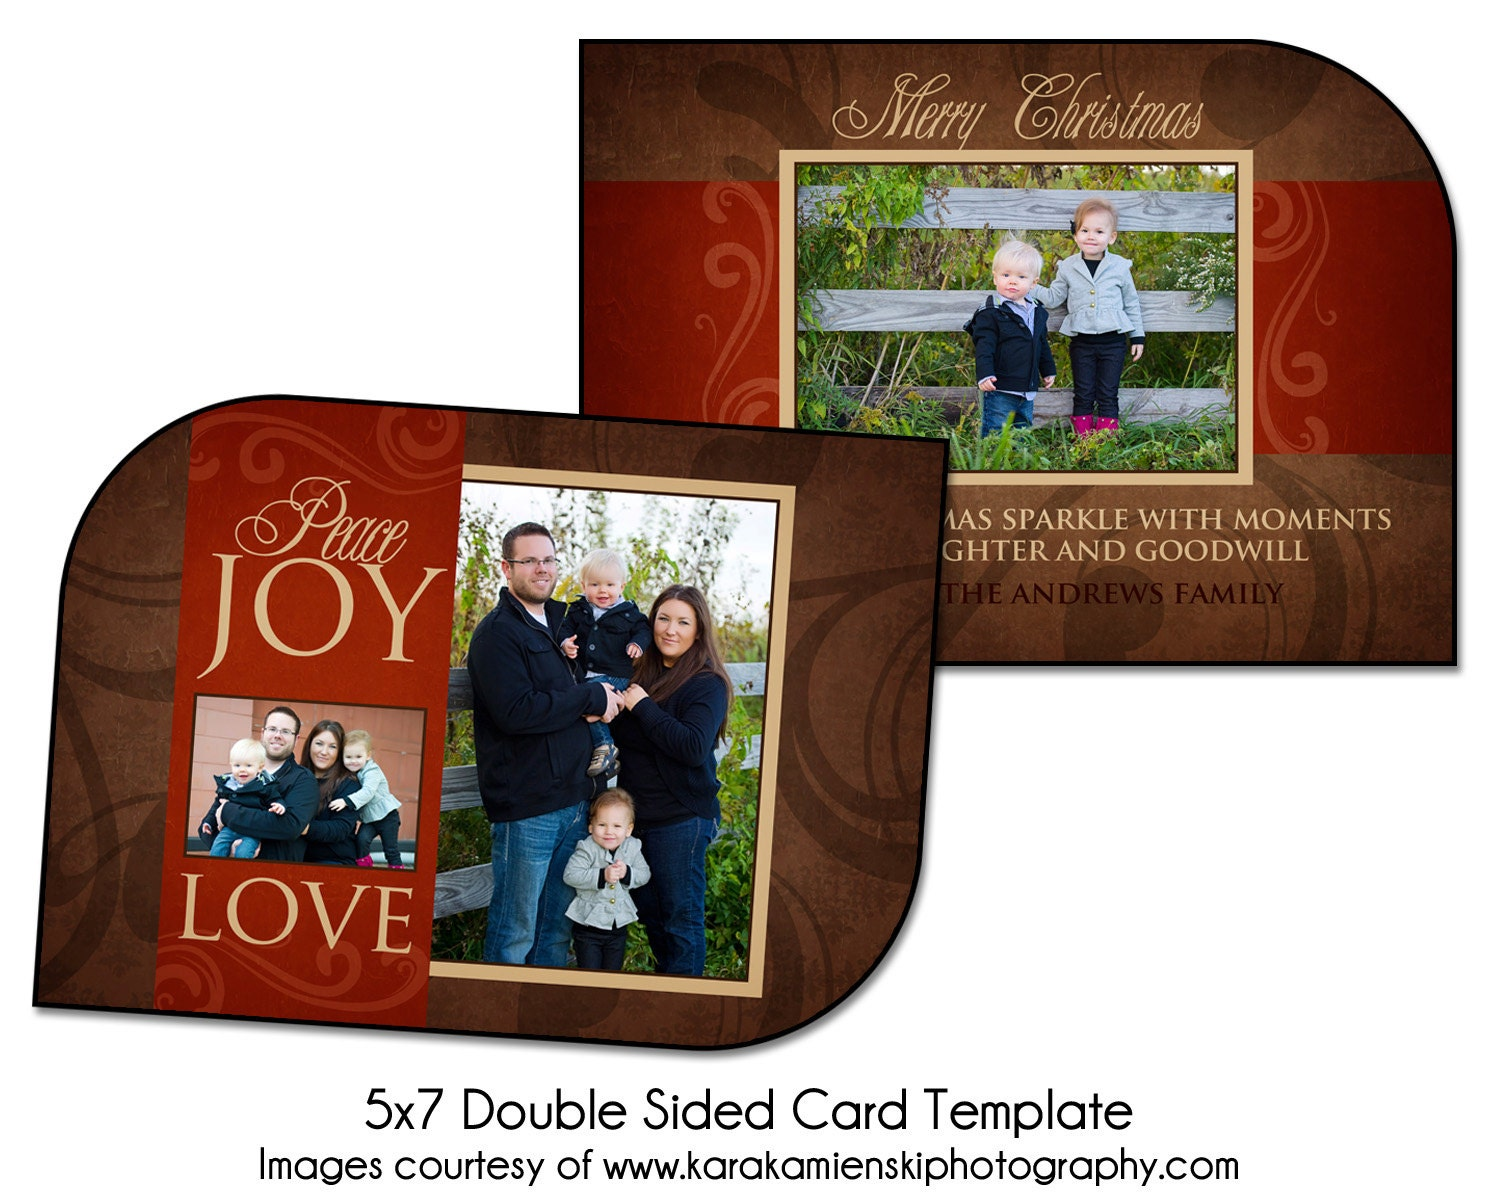 christmas card template family joy 5x7 double sided card. Black Bedroom Furniture Sets. Home Design Ideas